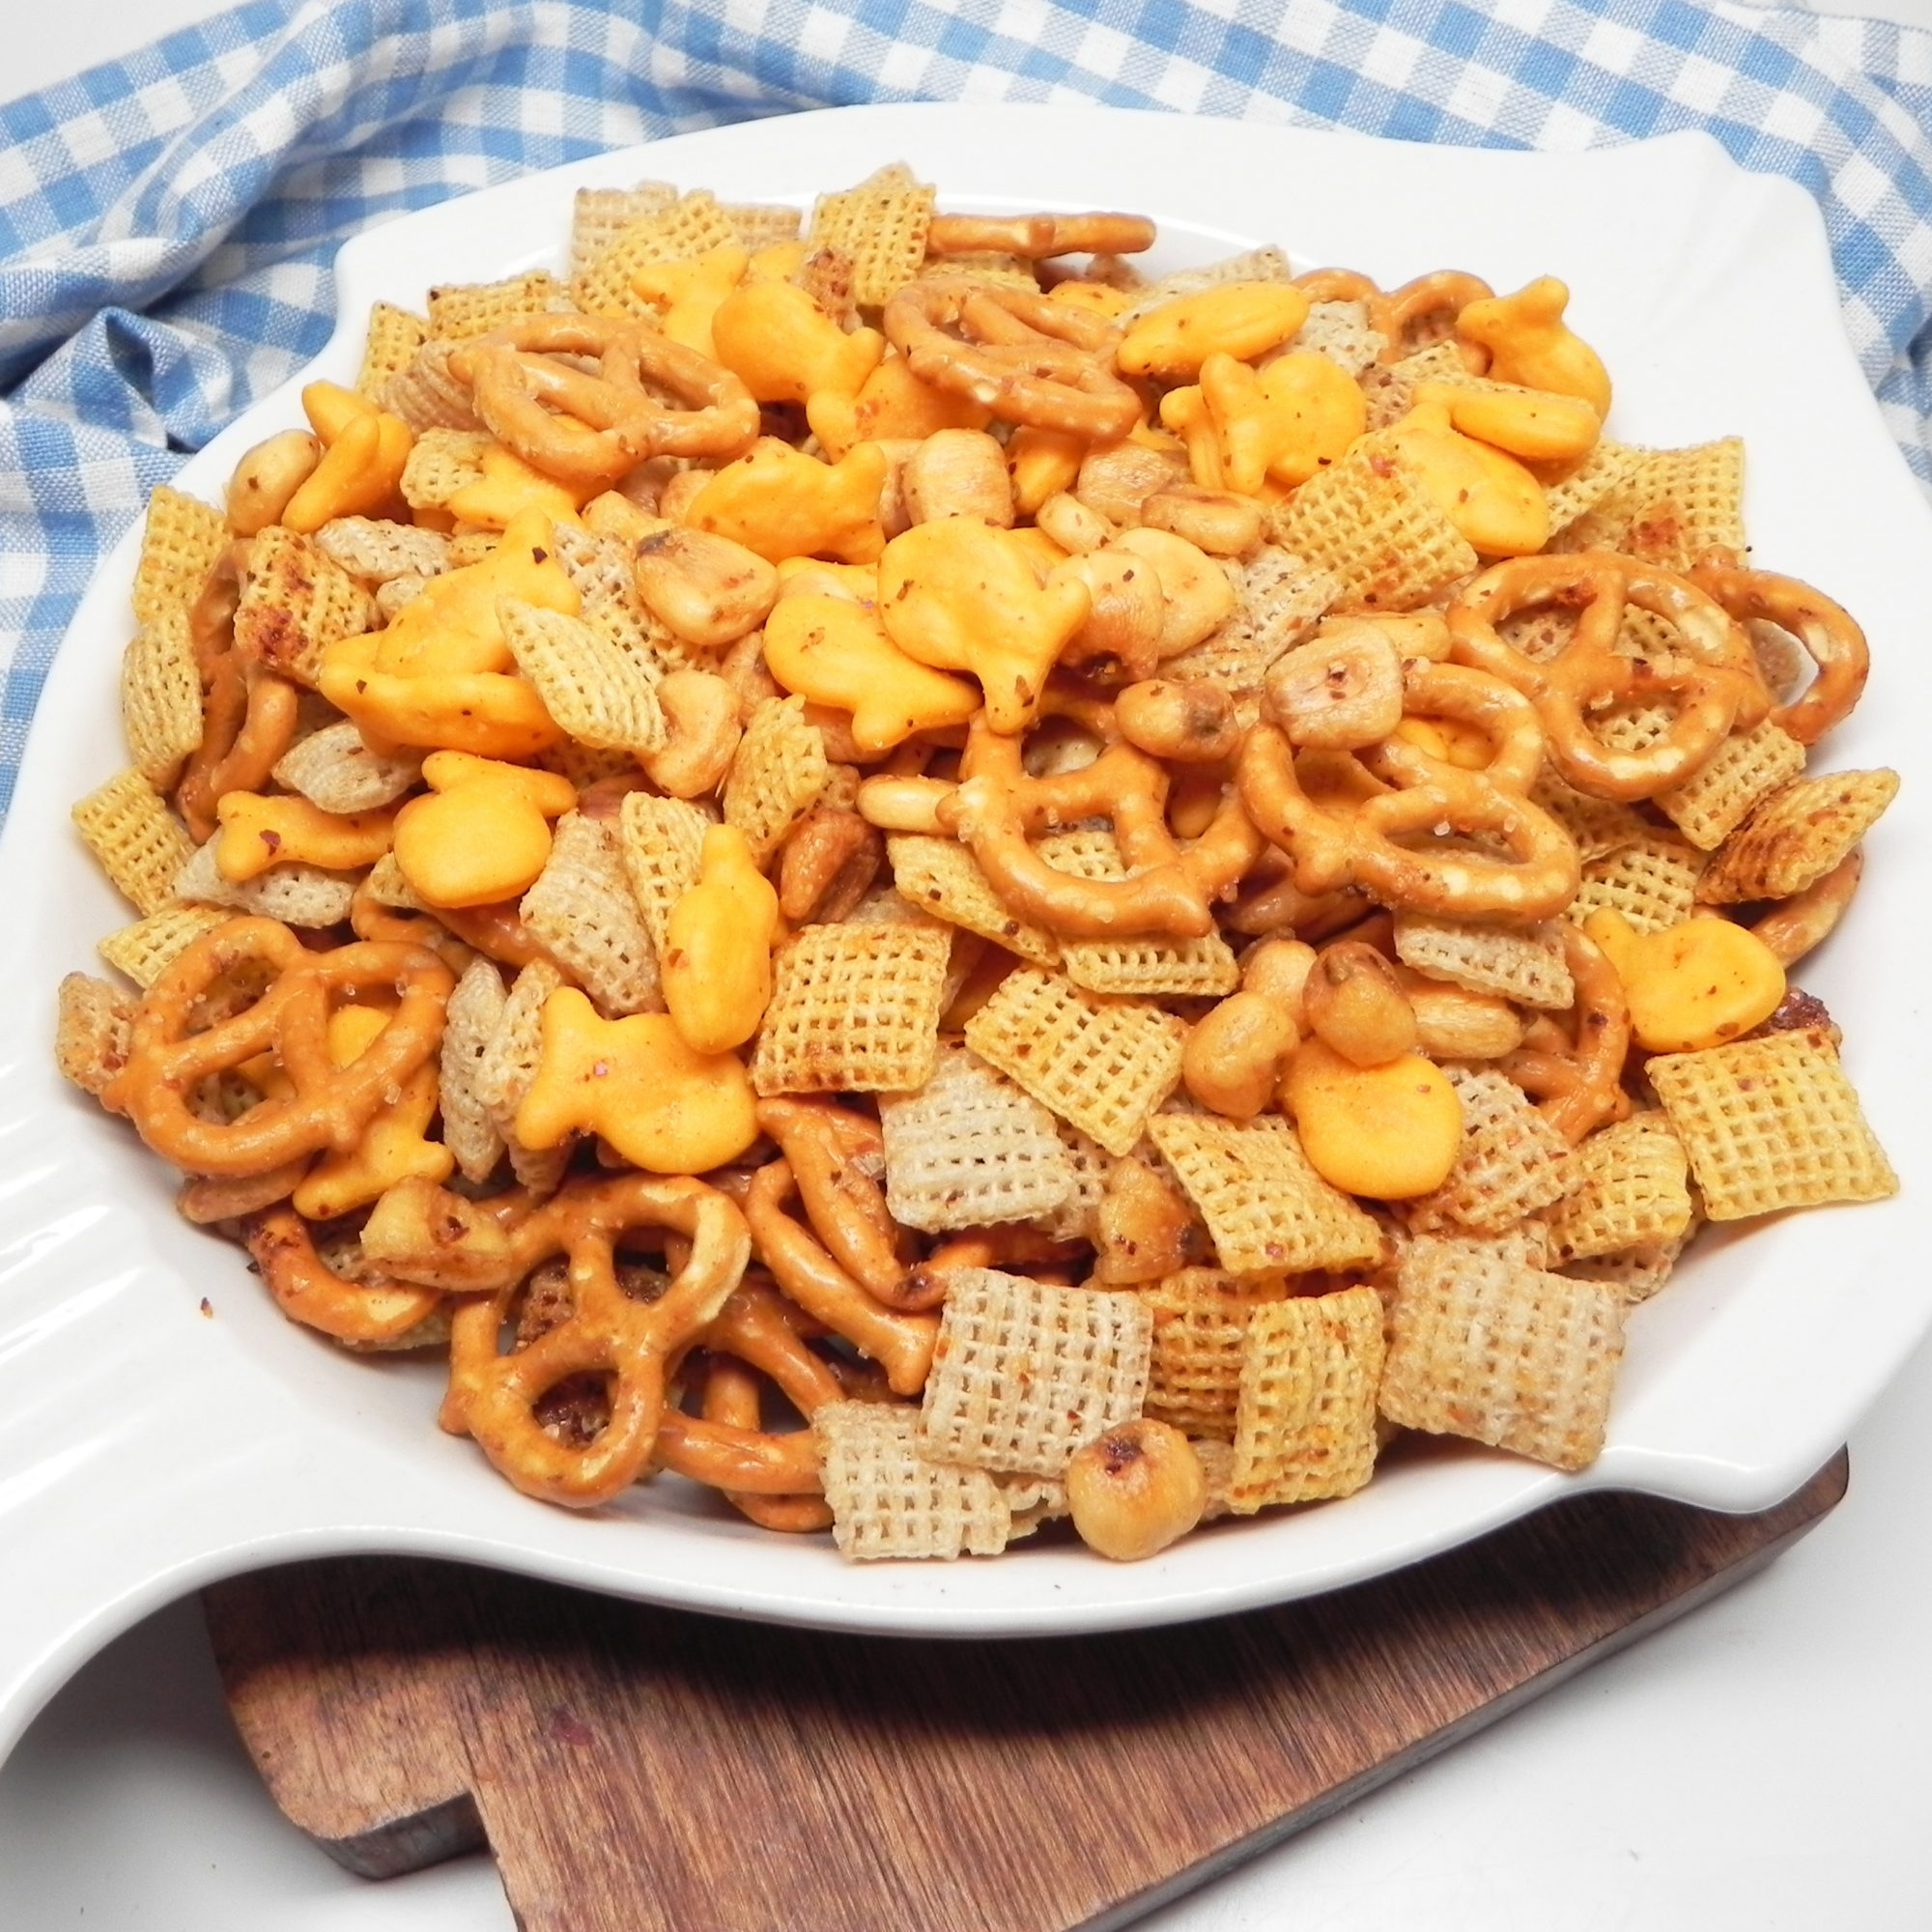 Tajin Snack Mix in a white dish